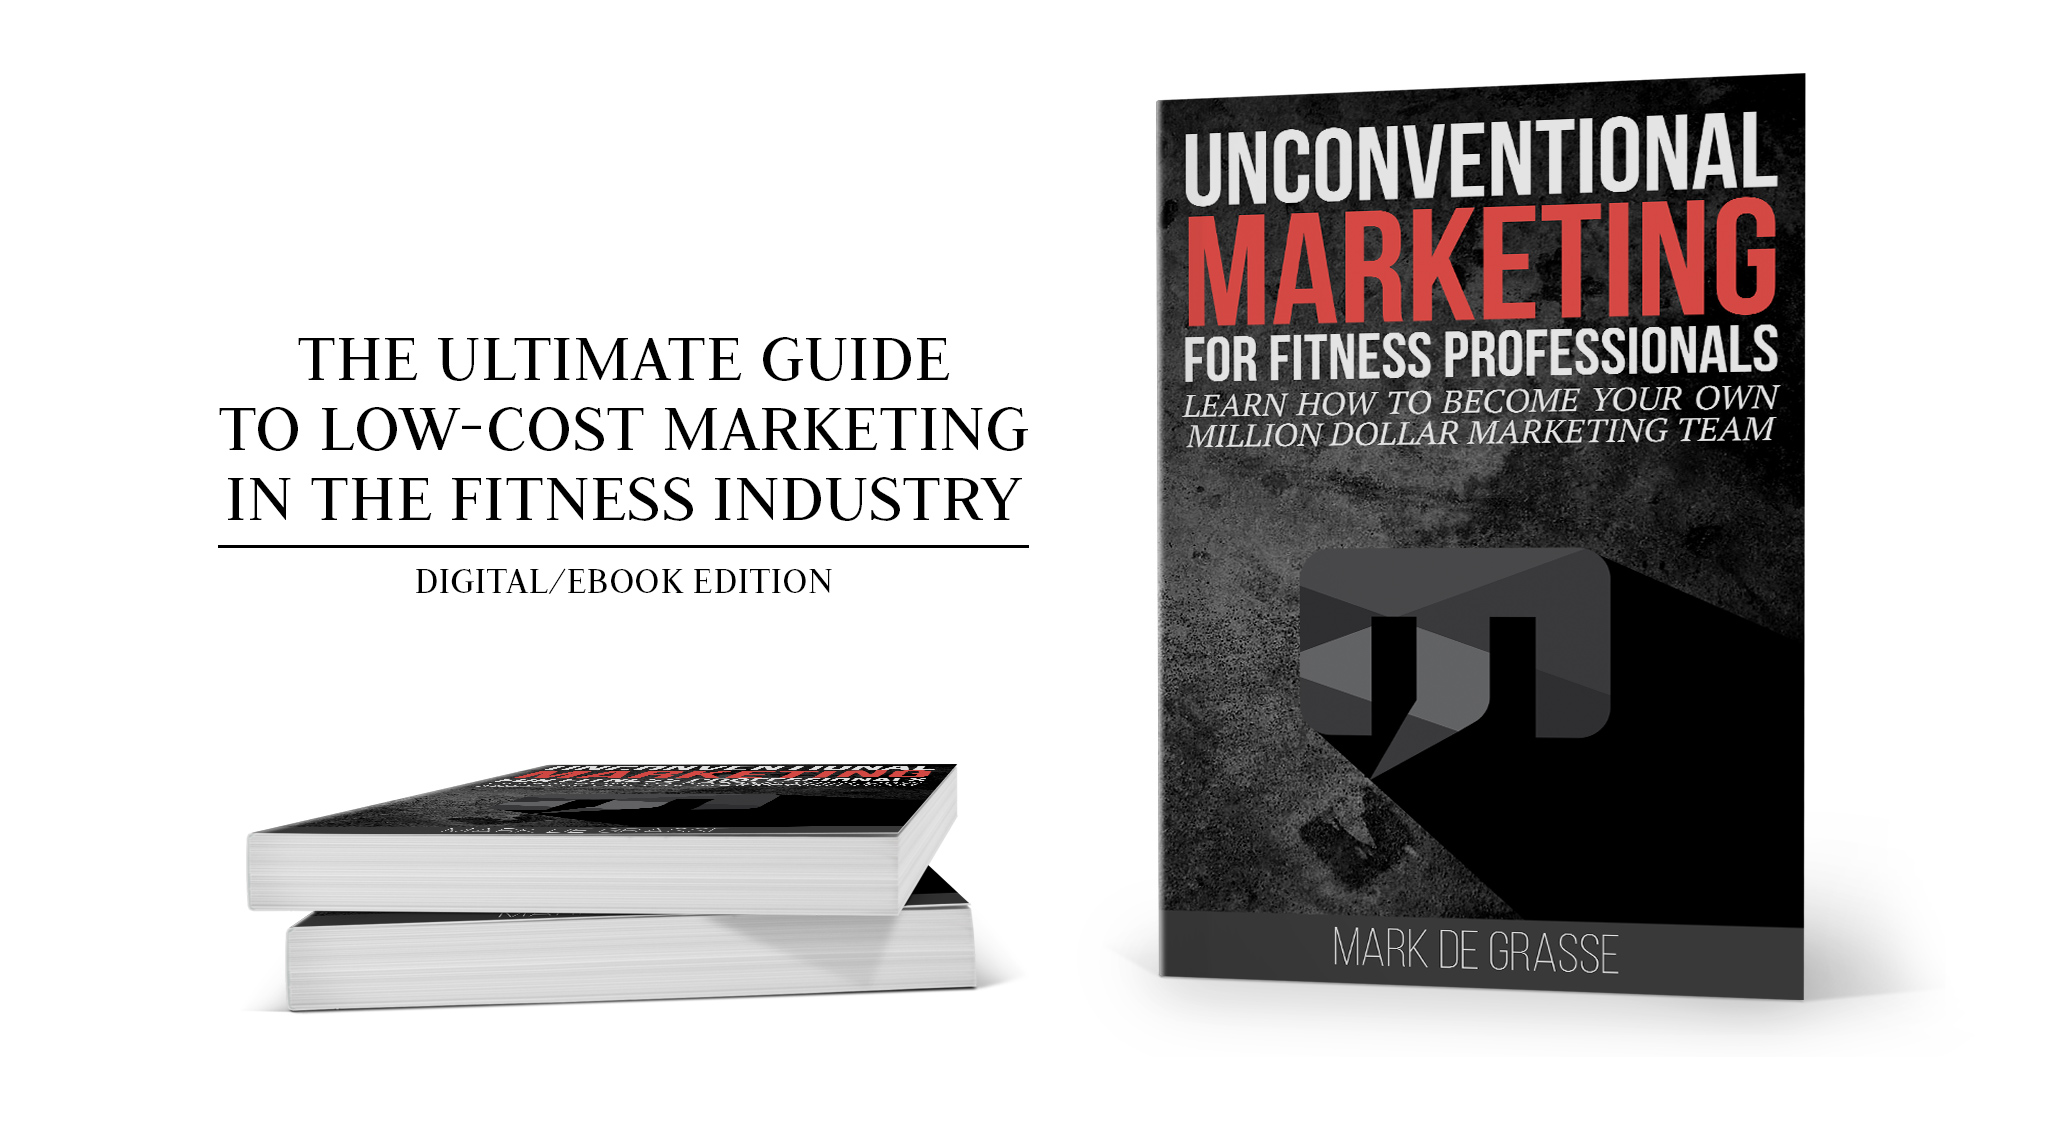 Unconventional Marketing for the fitness industry.